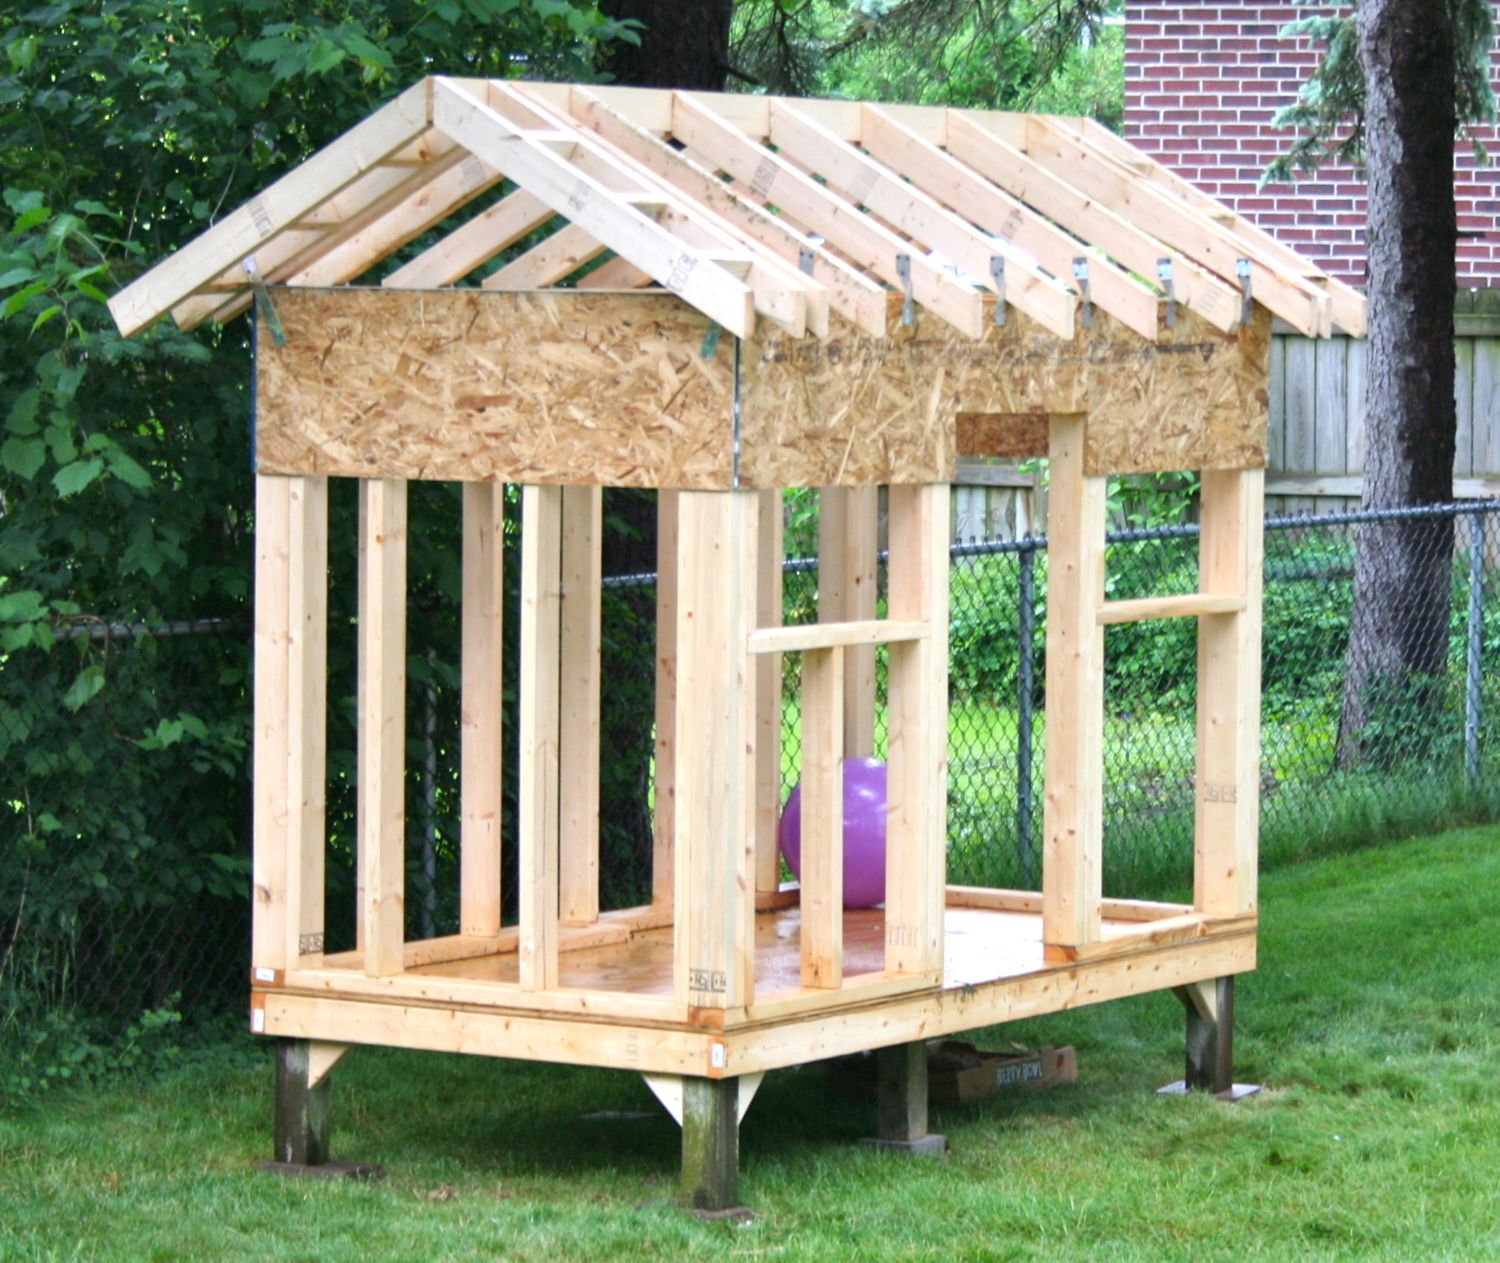 Woodwork simple playhouse design pdf plans for Blueprints for playhouse